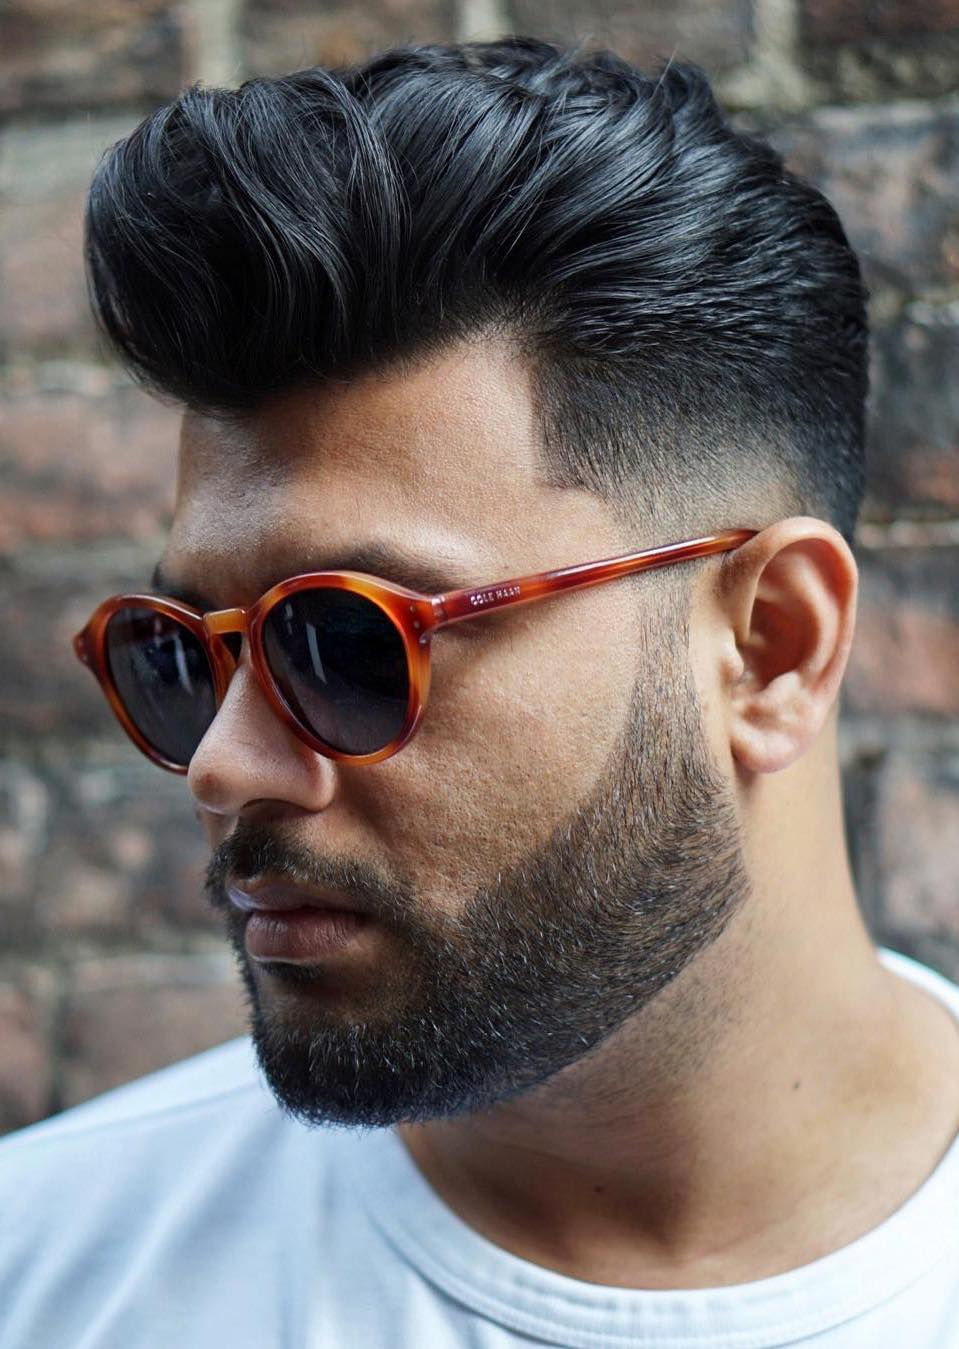 Taper Faded Pompadour with Glasses